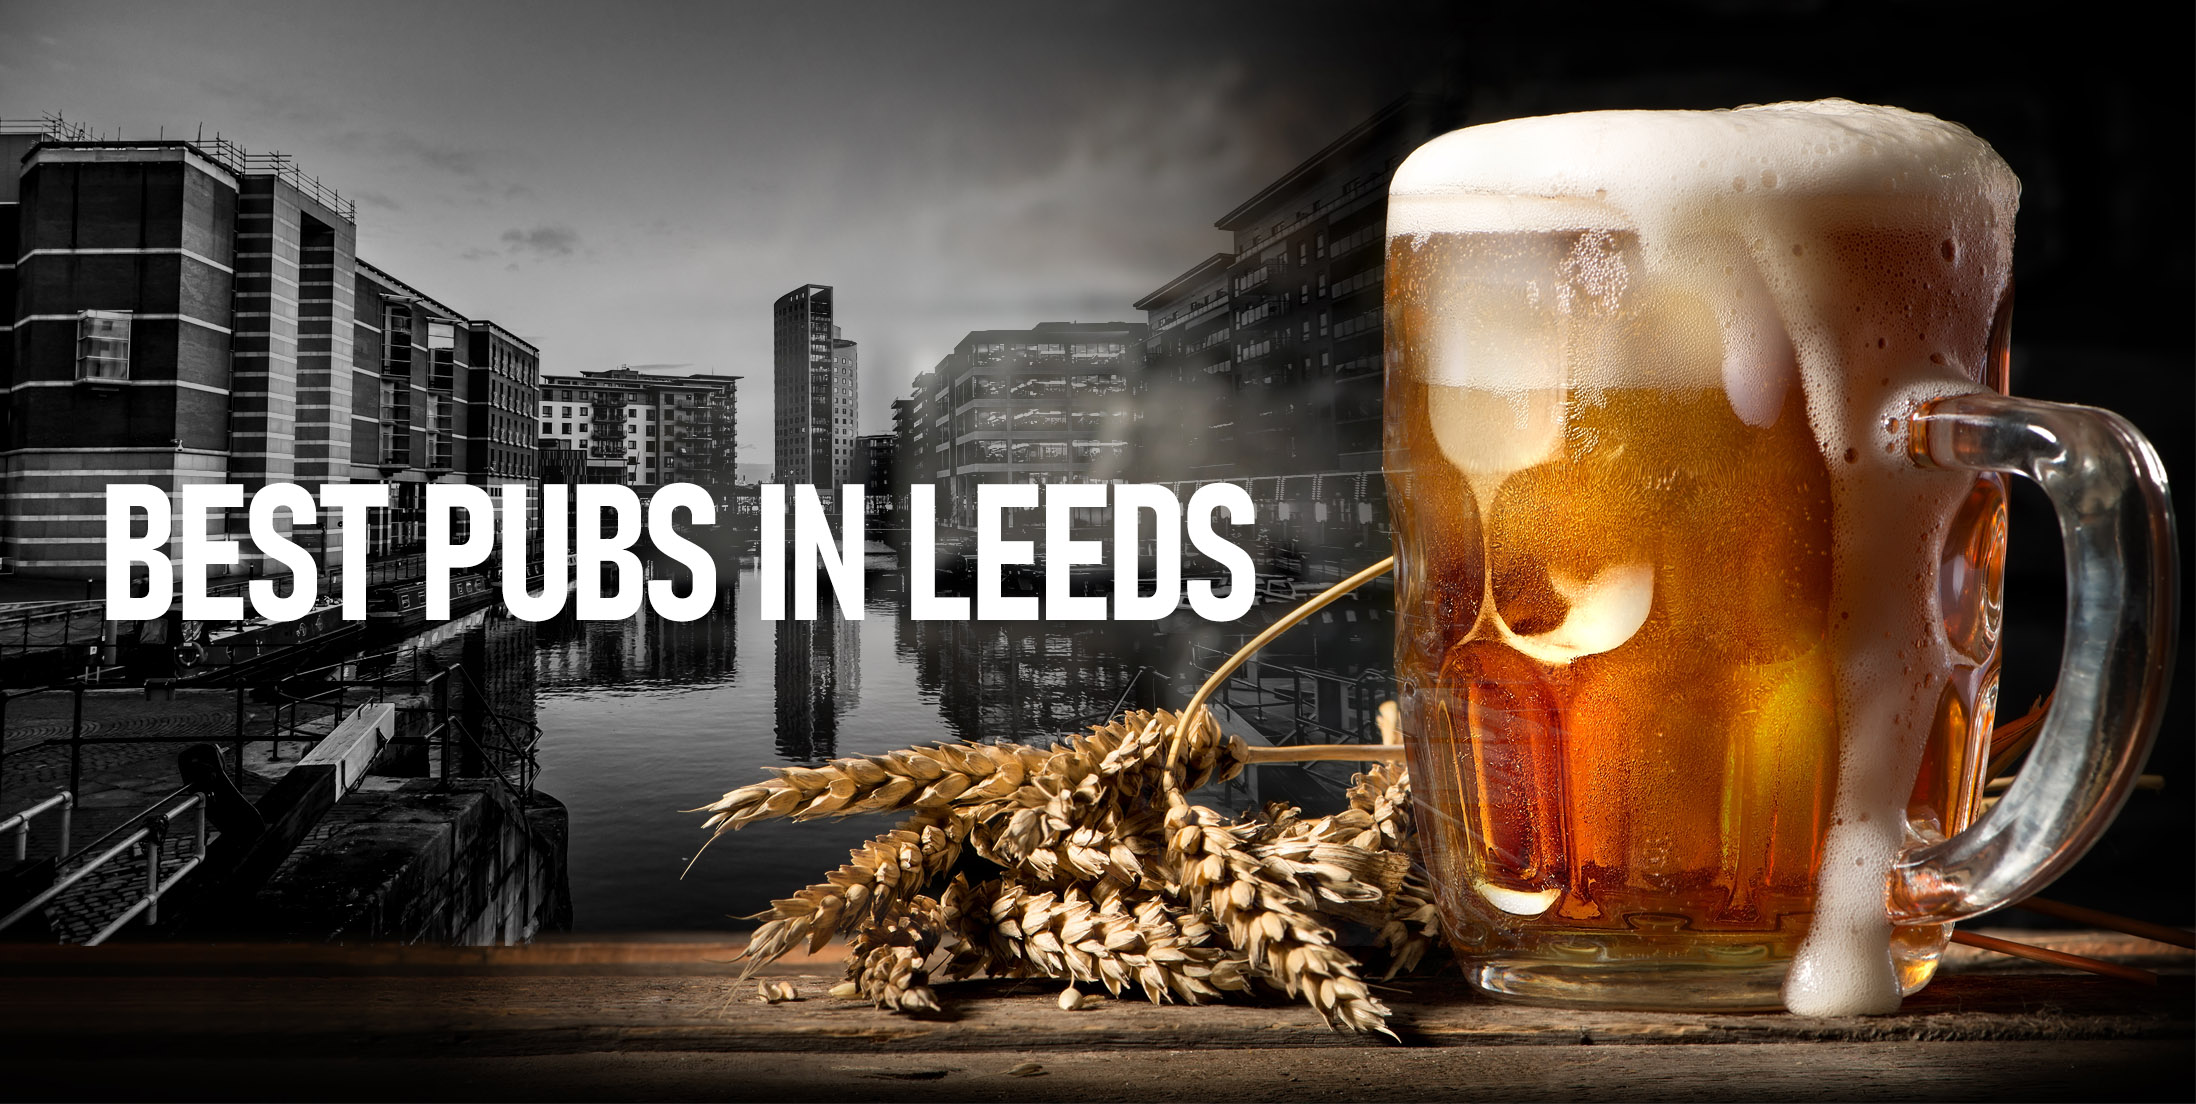 Best Pubs in Leeds